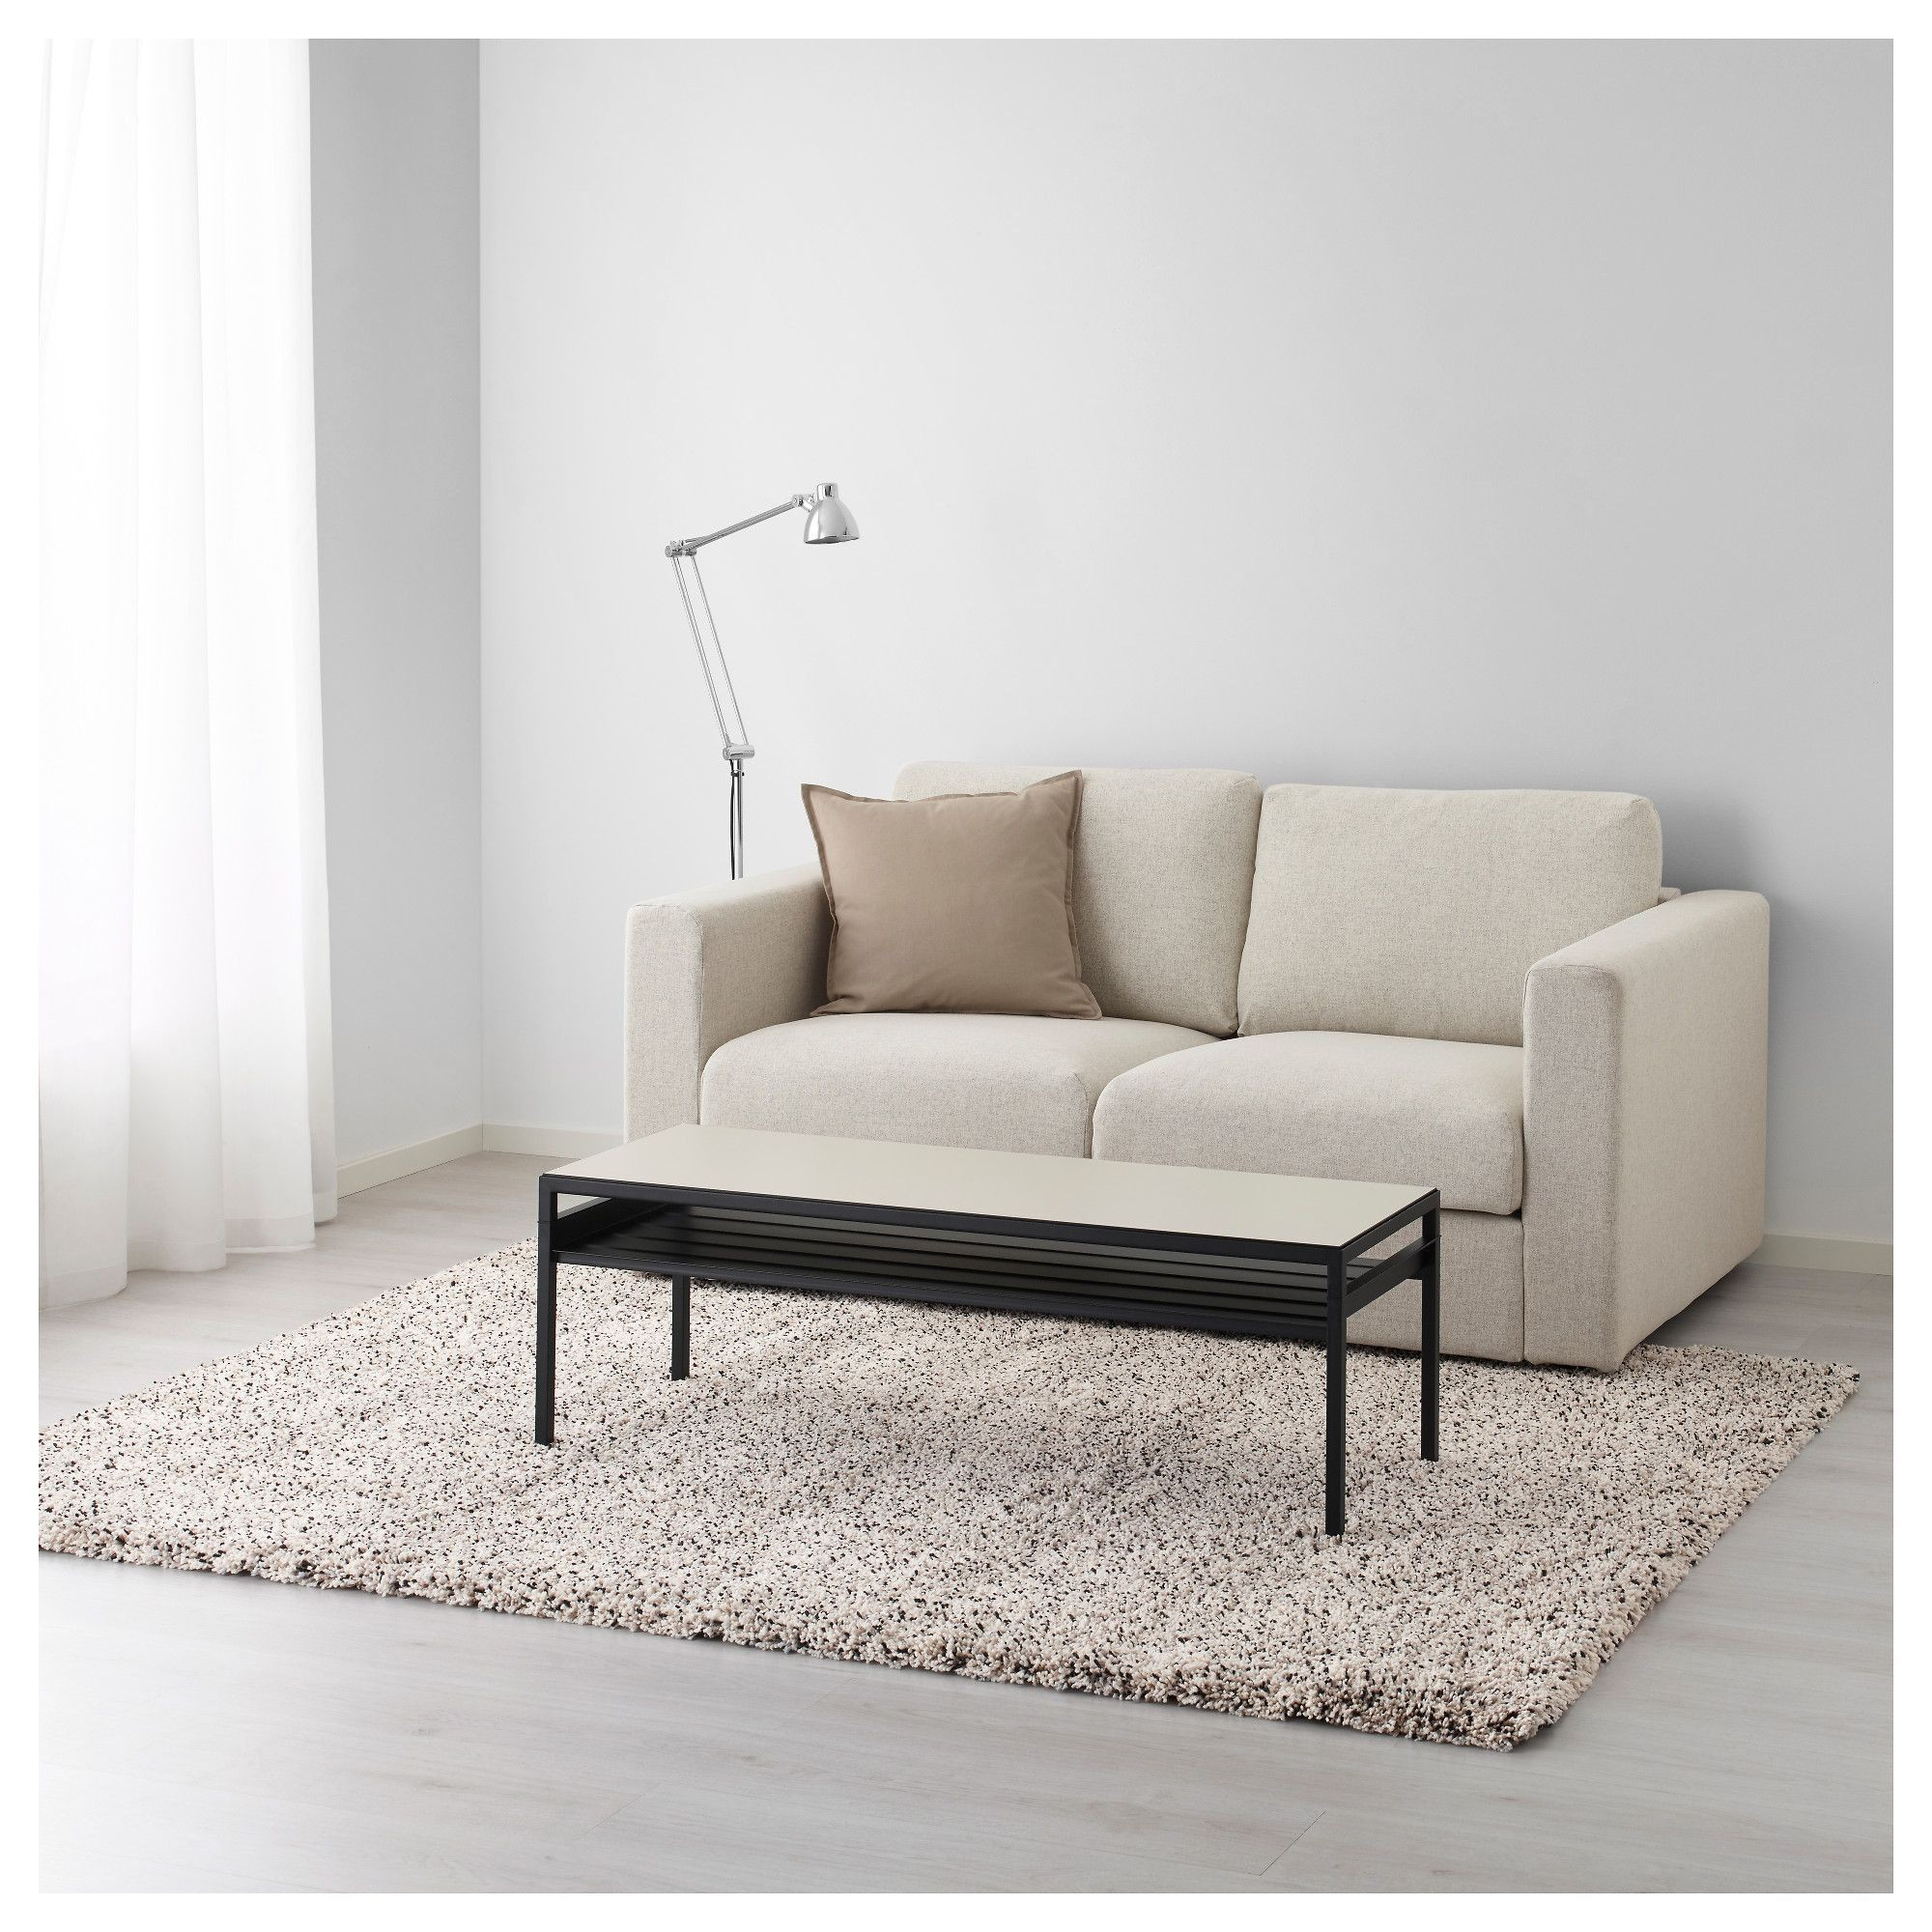 Canapé Convertible Ikea 2 Places Beau Photos Ikea Canapes Inspirational Interior 50 Inspirational Ikea sofa Ideas